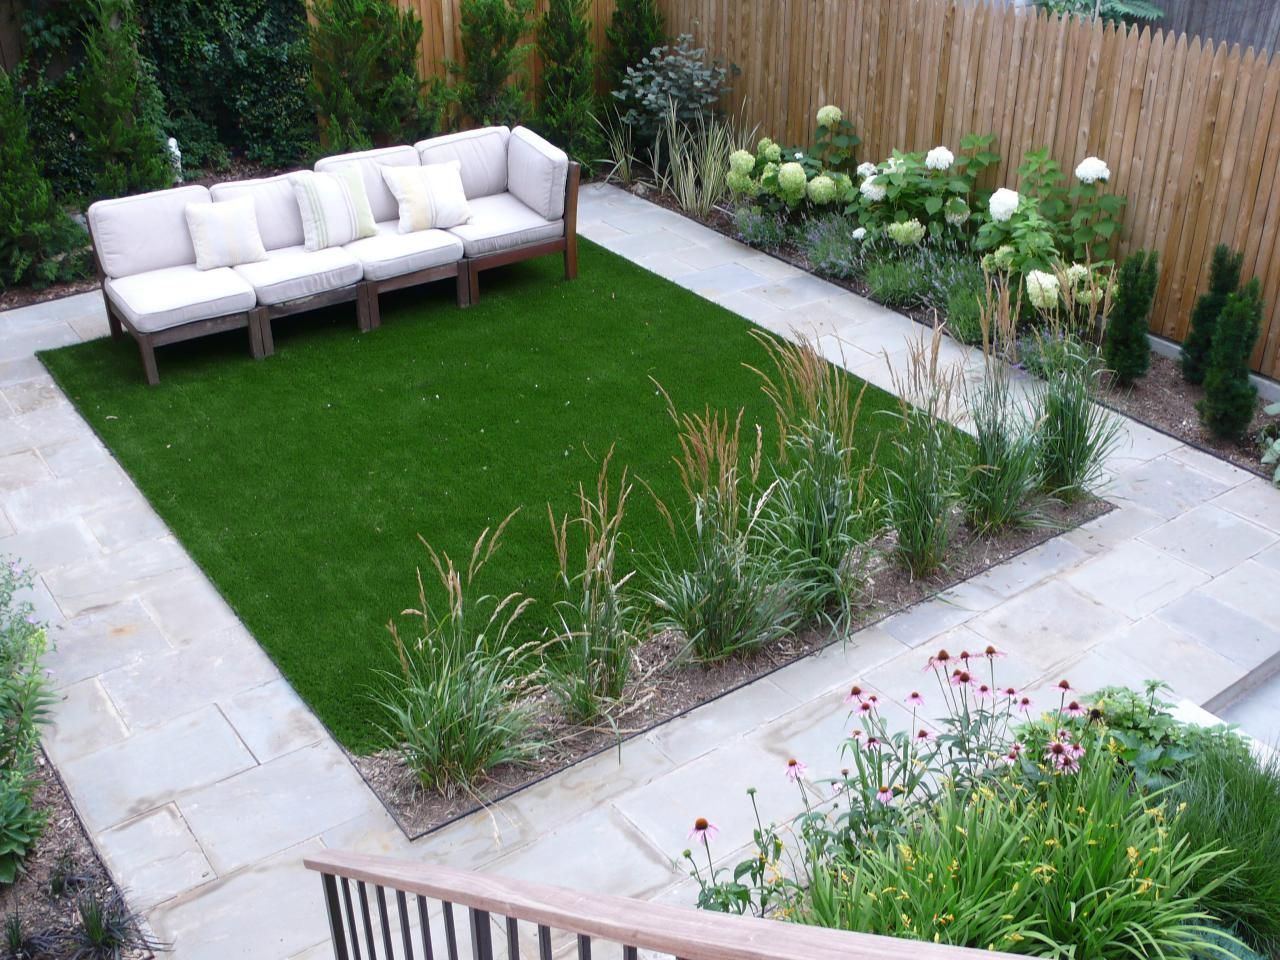 12 Outdoor Flooring Ideas Outdoors Backyard Patio Designs Small regarding 14 Awesome Ideas How to Craft Landscape Design For Small Backyards